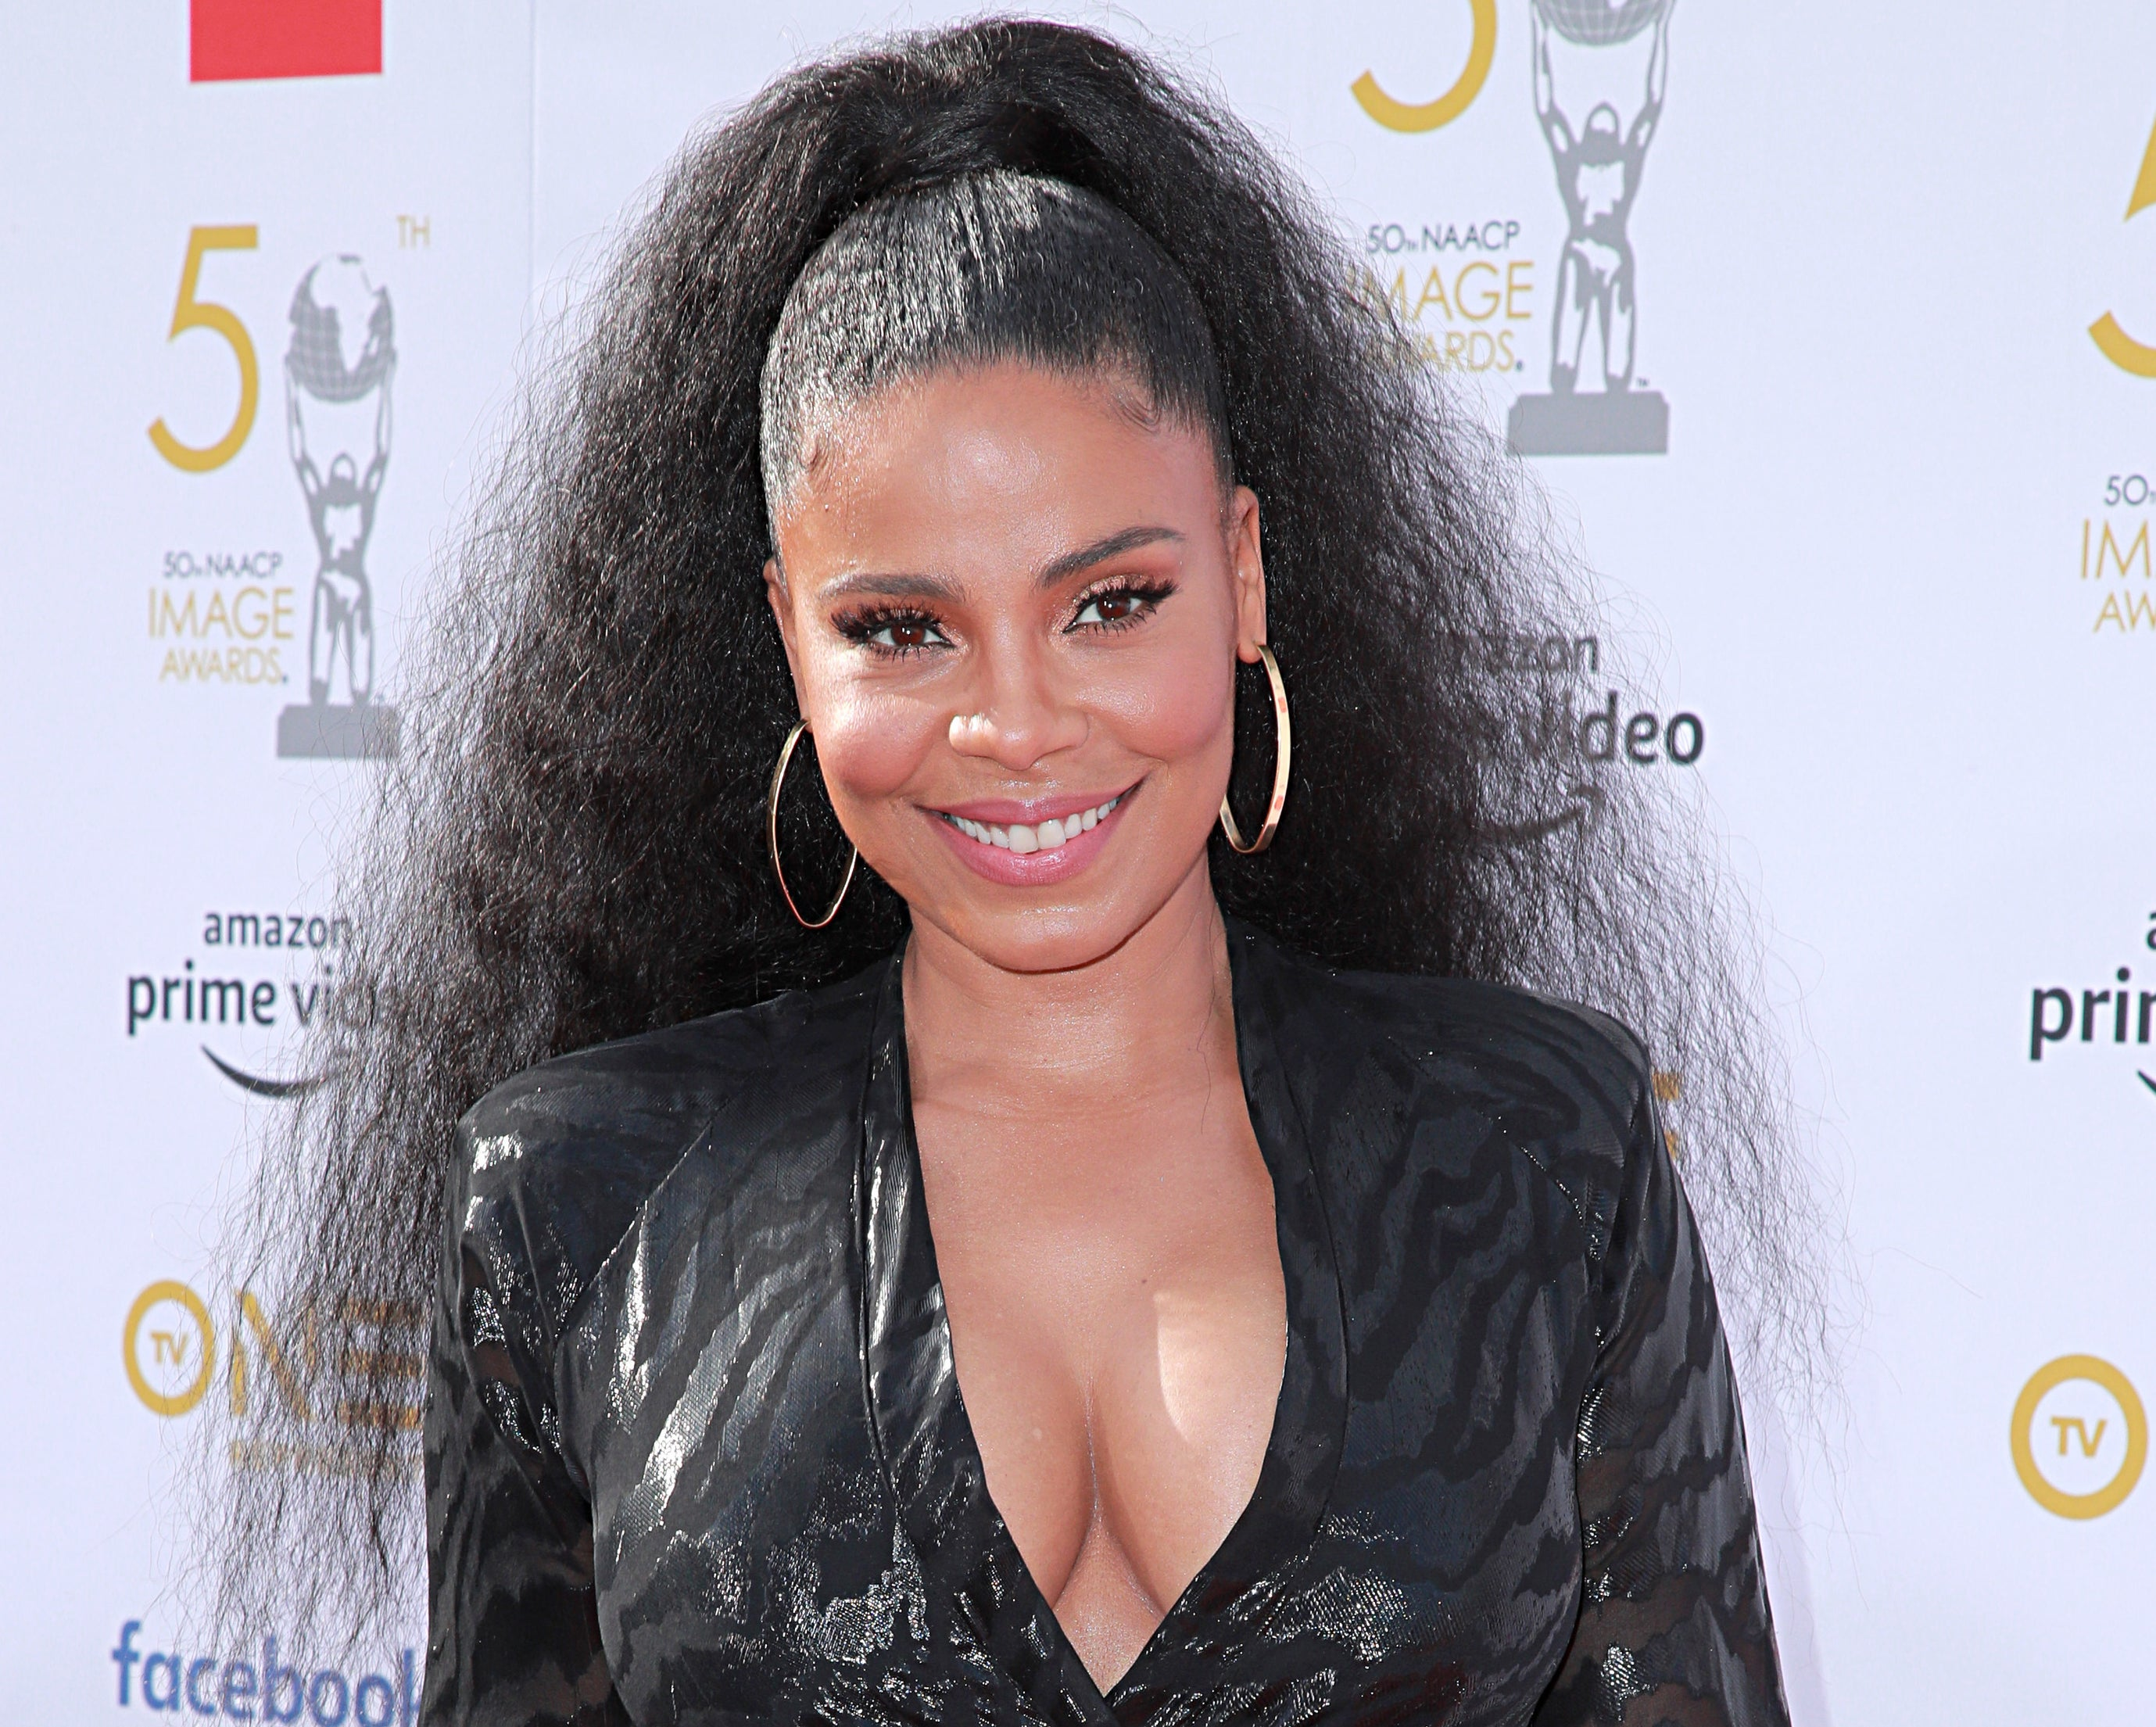 Sanaa wears her hair in a ponytail with gold hoop earrings and a black dress with a plunging neckline